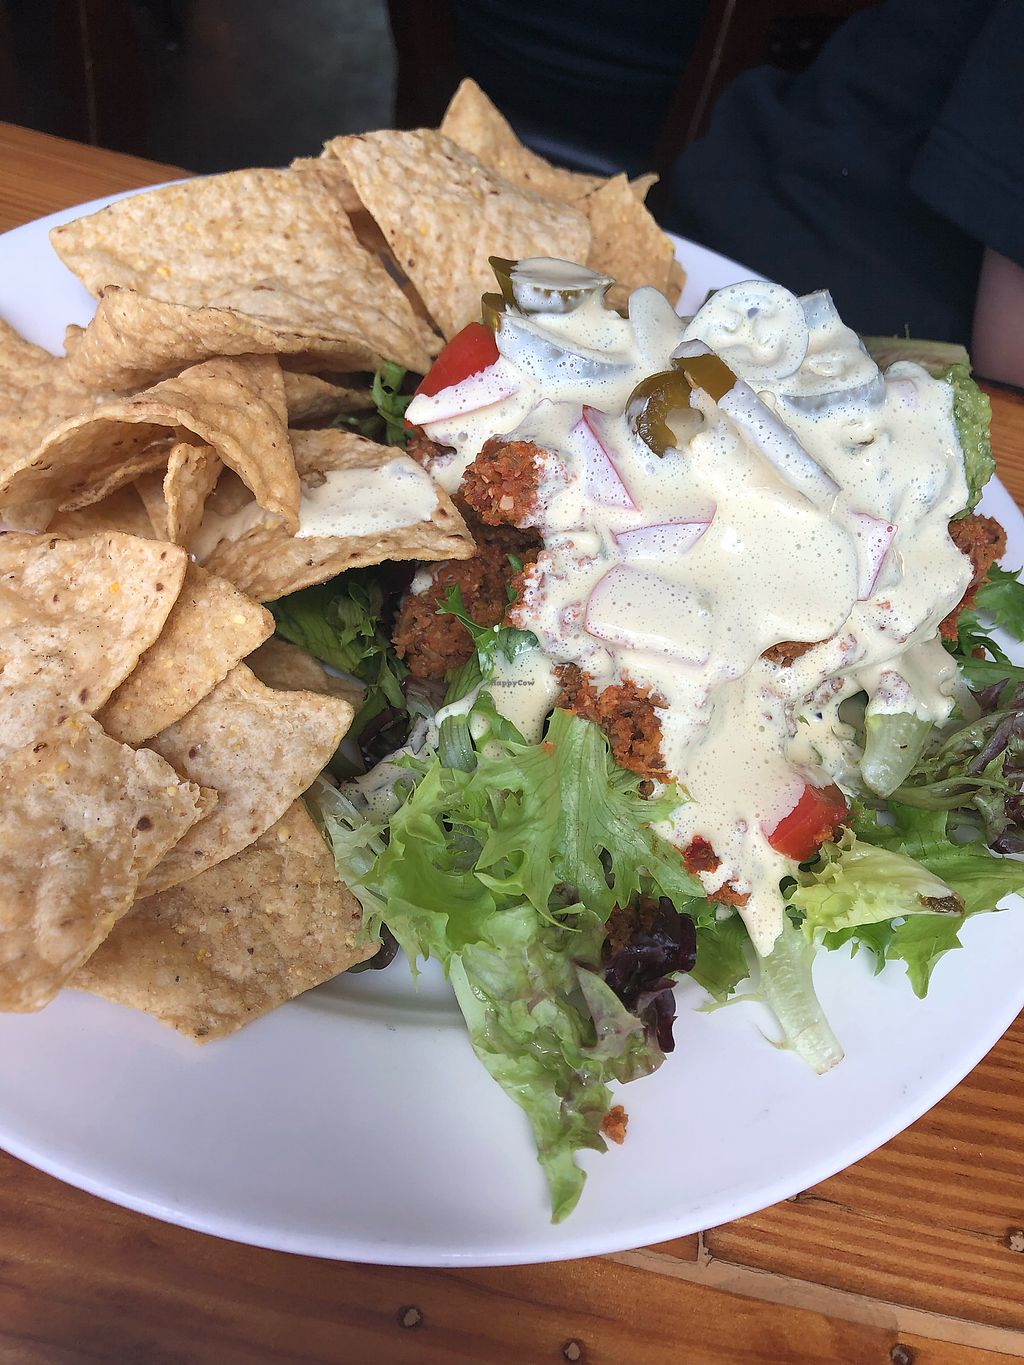 "Photo of Majani  by <a href=""/members/profile/careerbree"">careerbree</a> <br/>Perfection in the form of nachos! <br/> May 24, 2018  - <a href='/contact/abuse/image/30137/404533'>Report</a>"